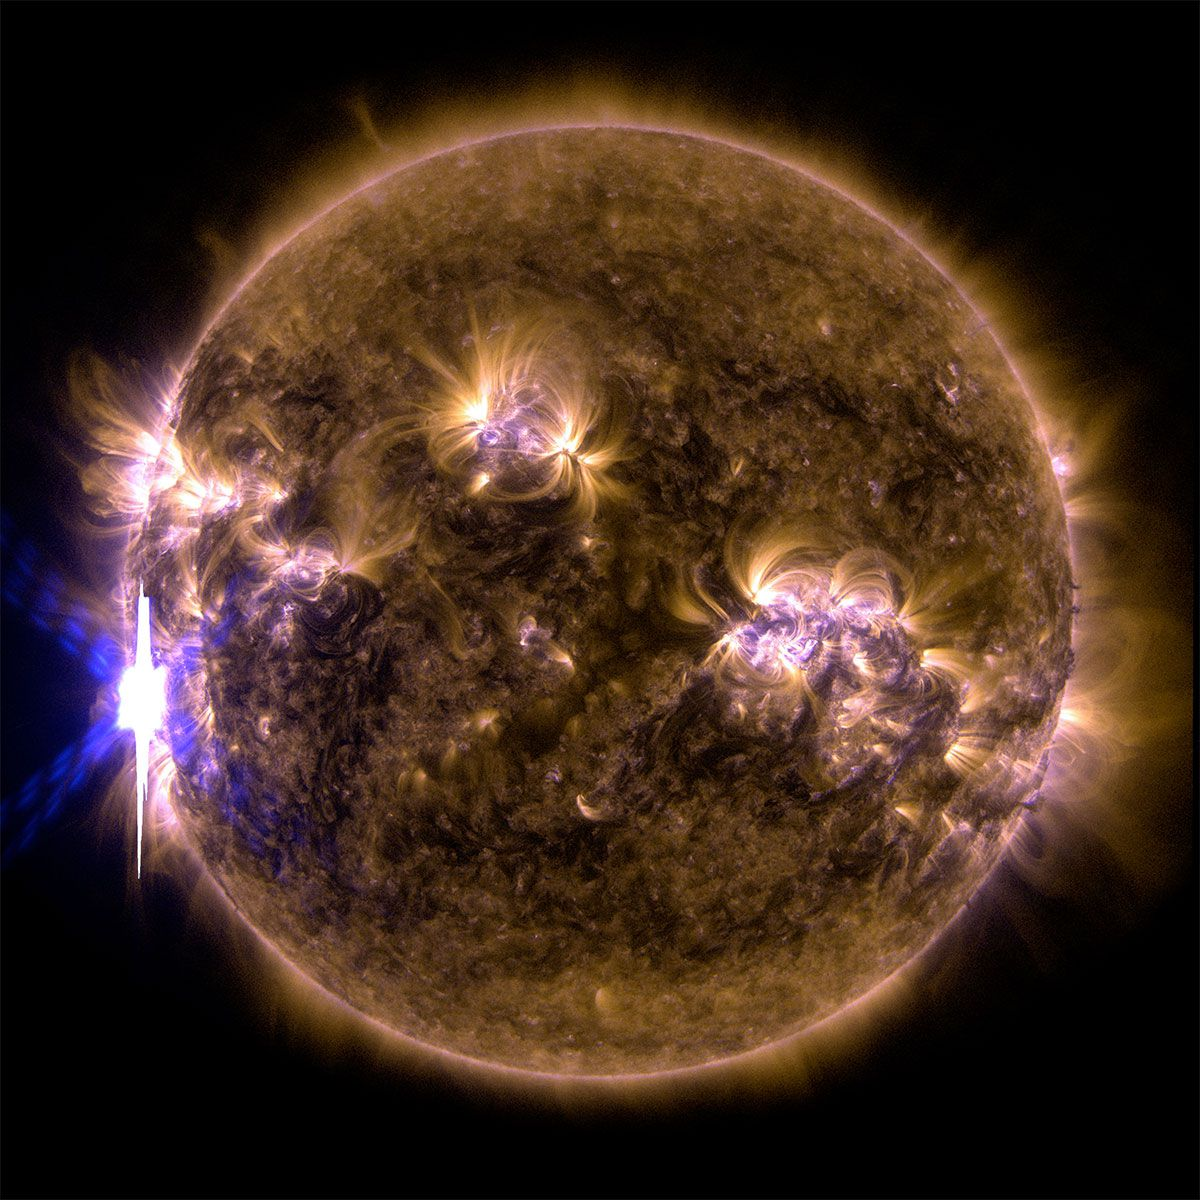 Solar flare composite image showing the sun in ultraviolet light with wavelengths of 131 and 171 Angstroms